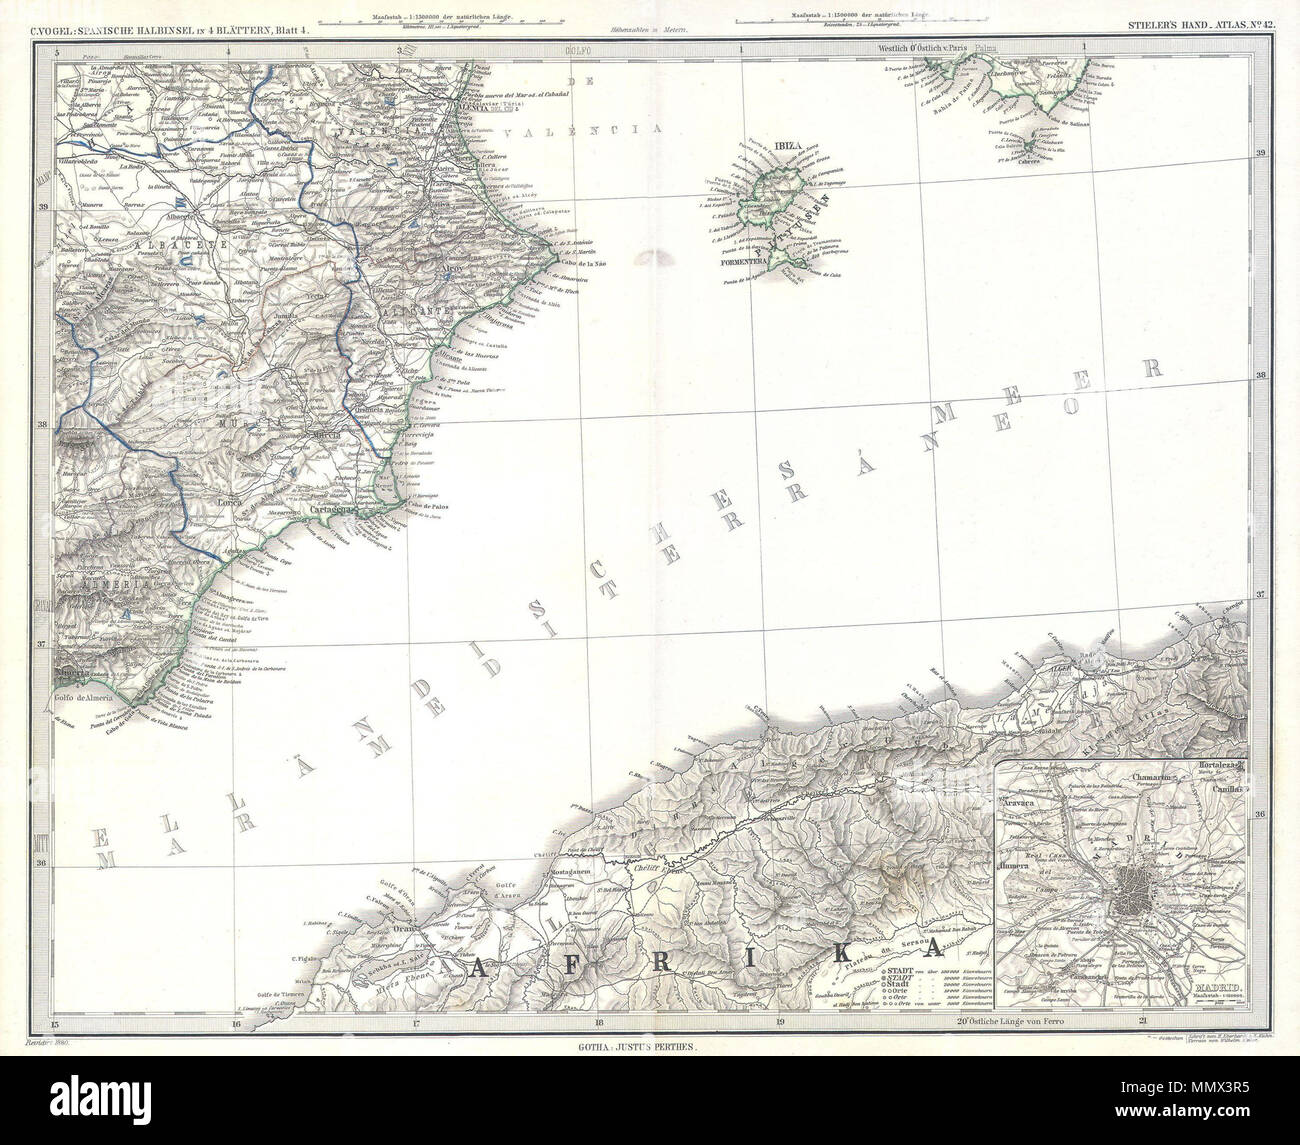 Map Of Spain Morocco.English This Fascinating Hand Colored Map Depicts The Coasts Of